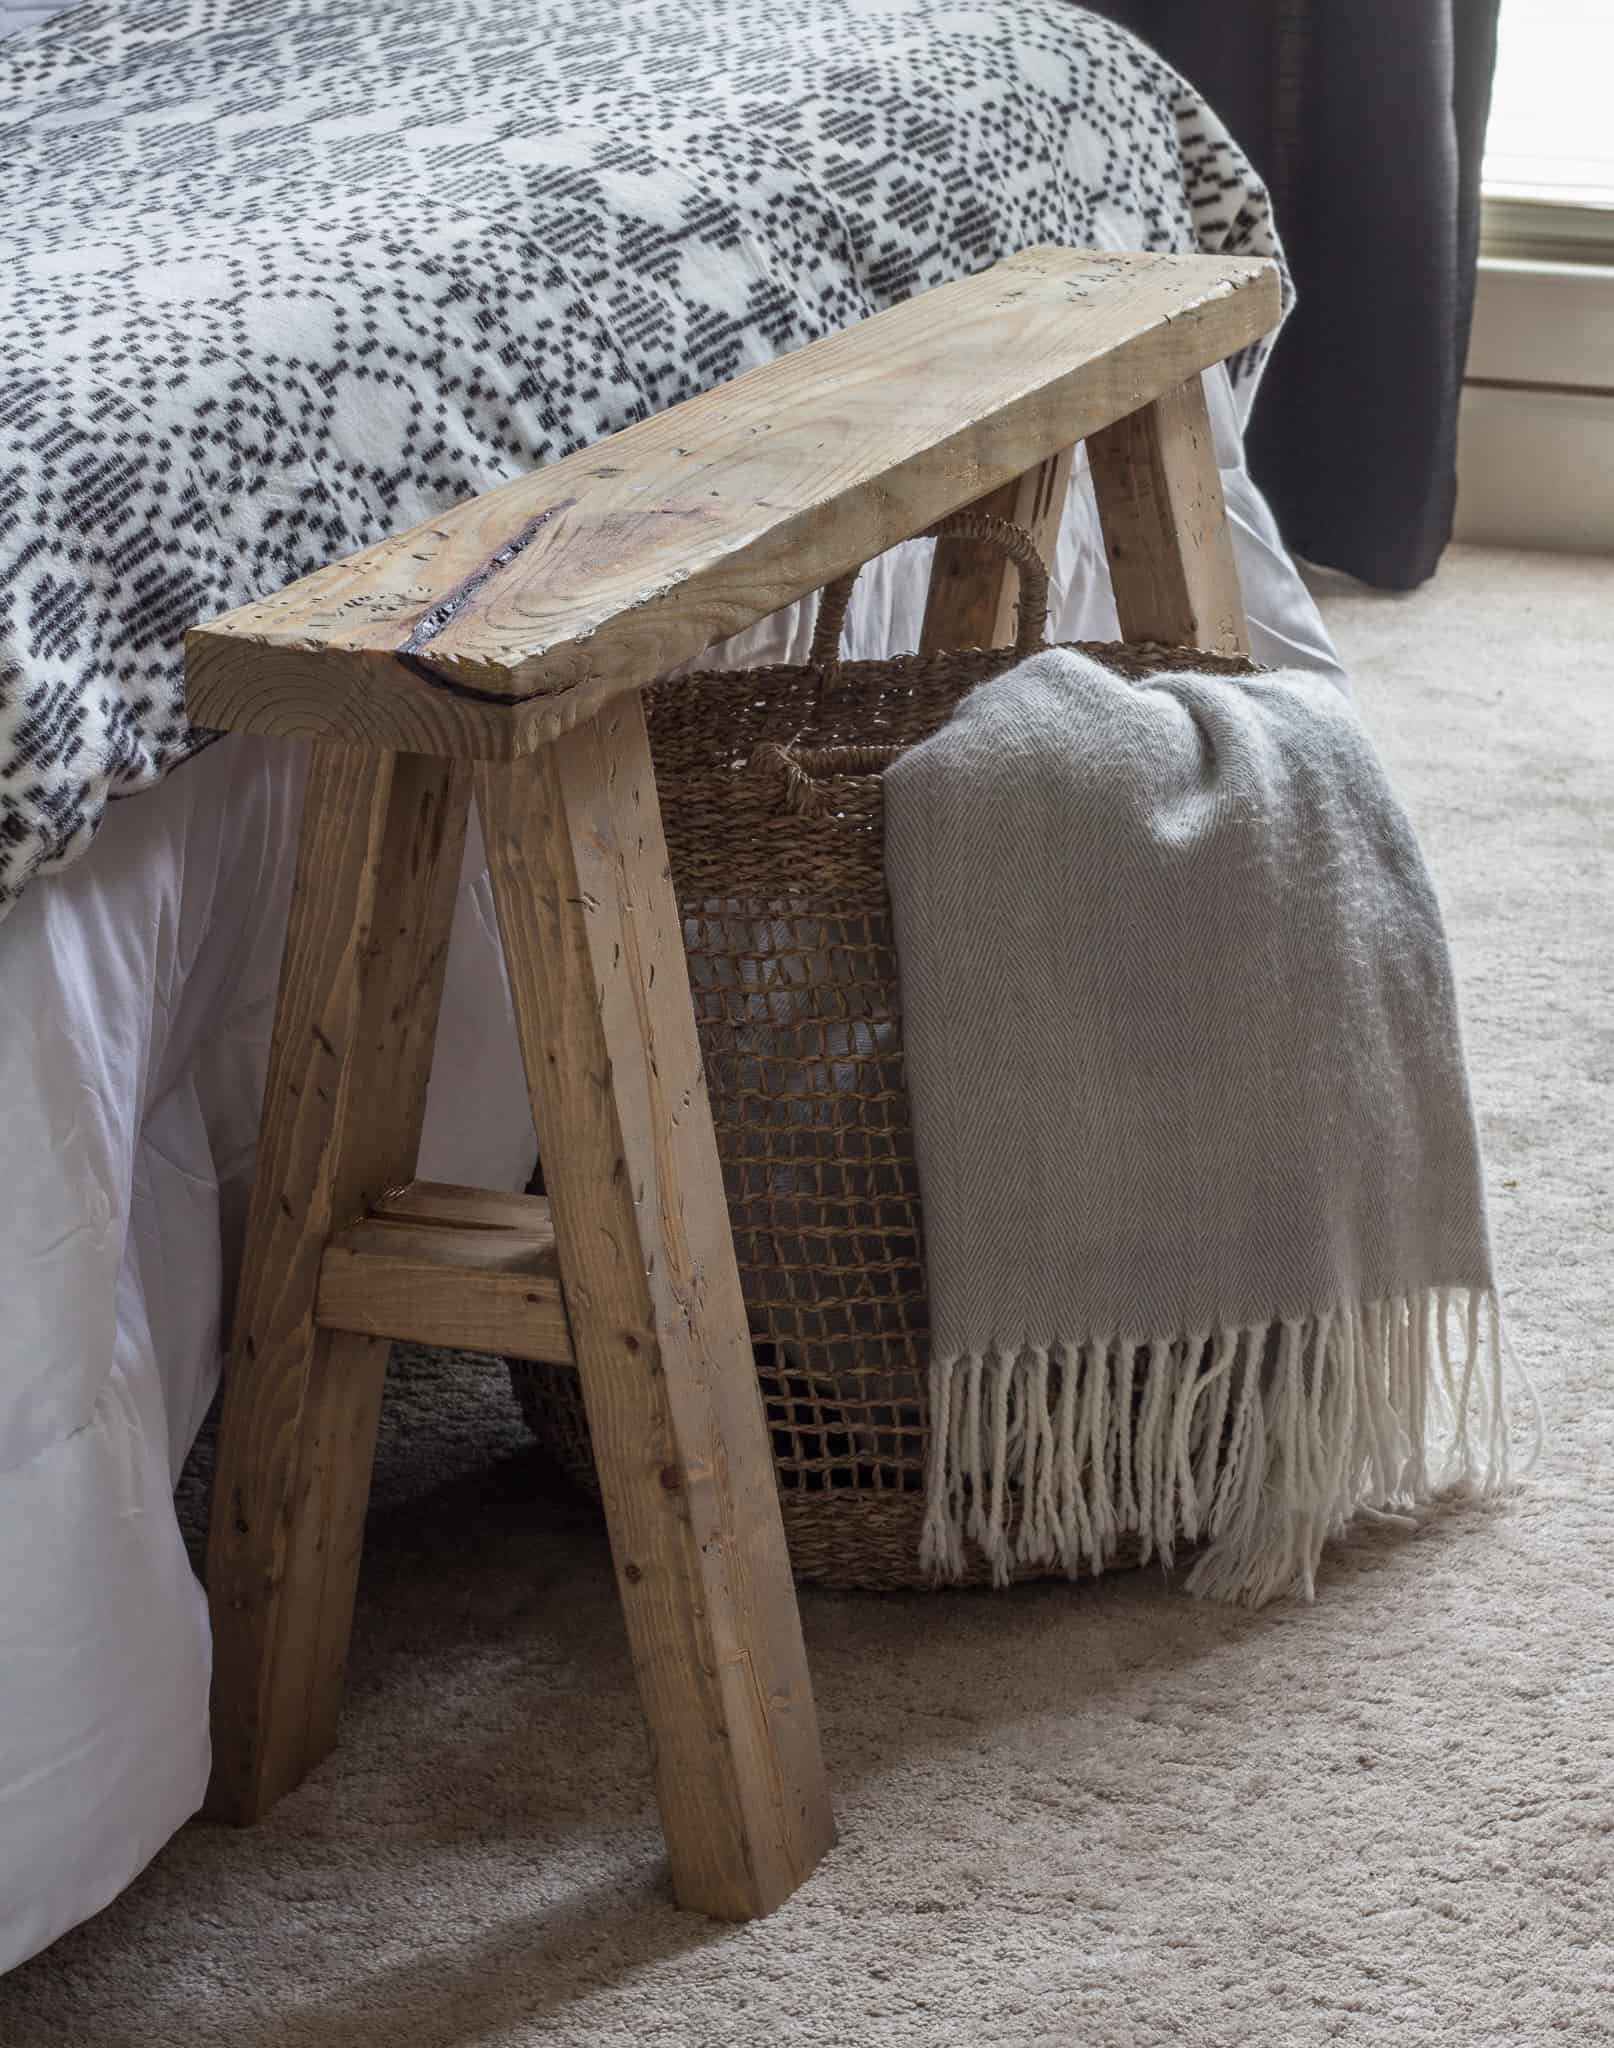 Astonishing Diy End Of Bed Wood Bench Savvy Apron Theyellowbook Wood Chair Design Ideas Theyellowbookinfo